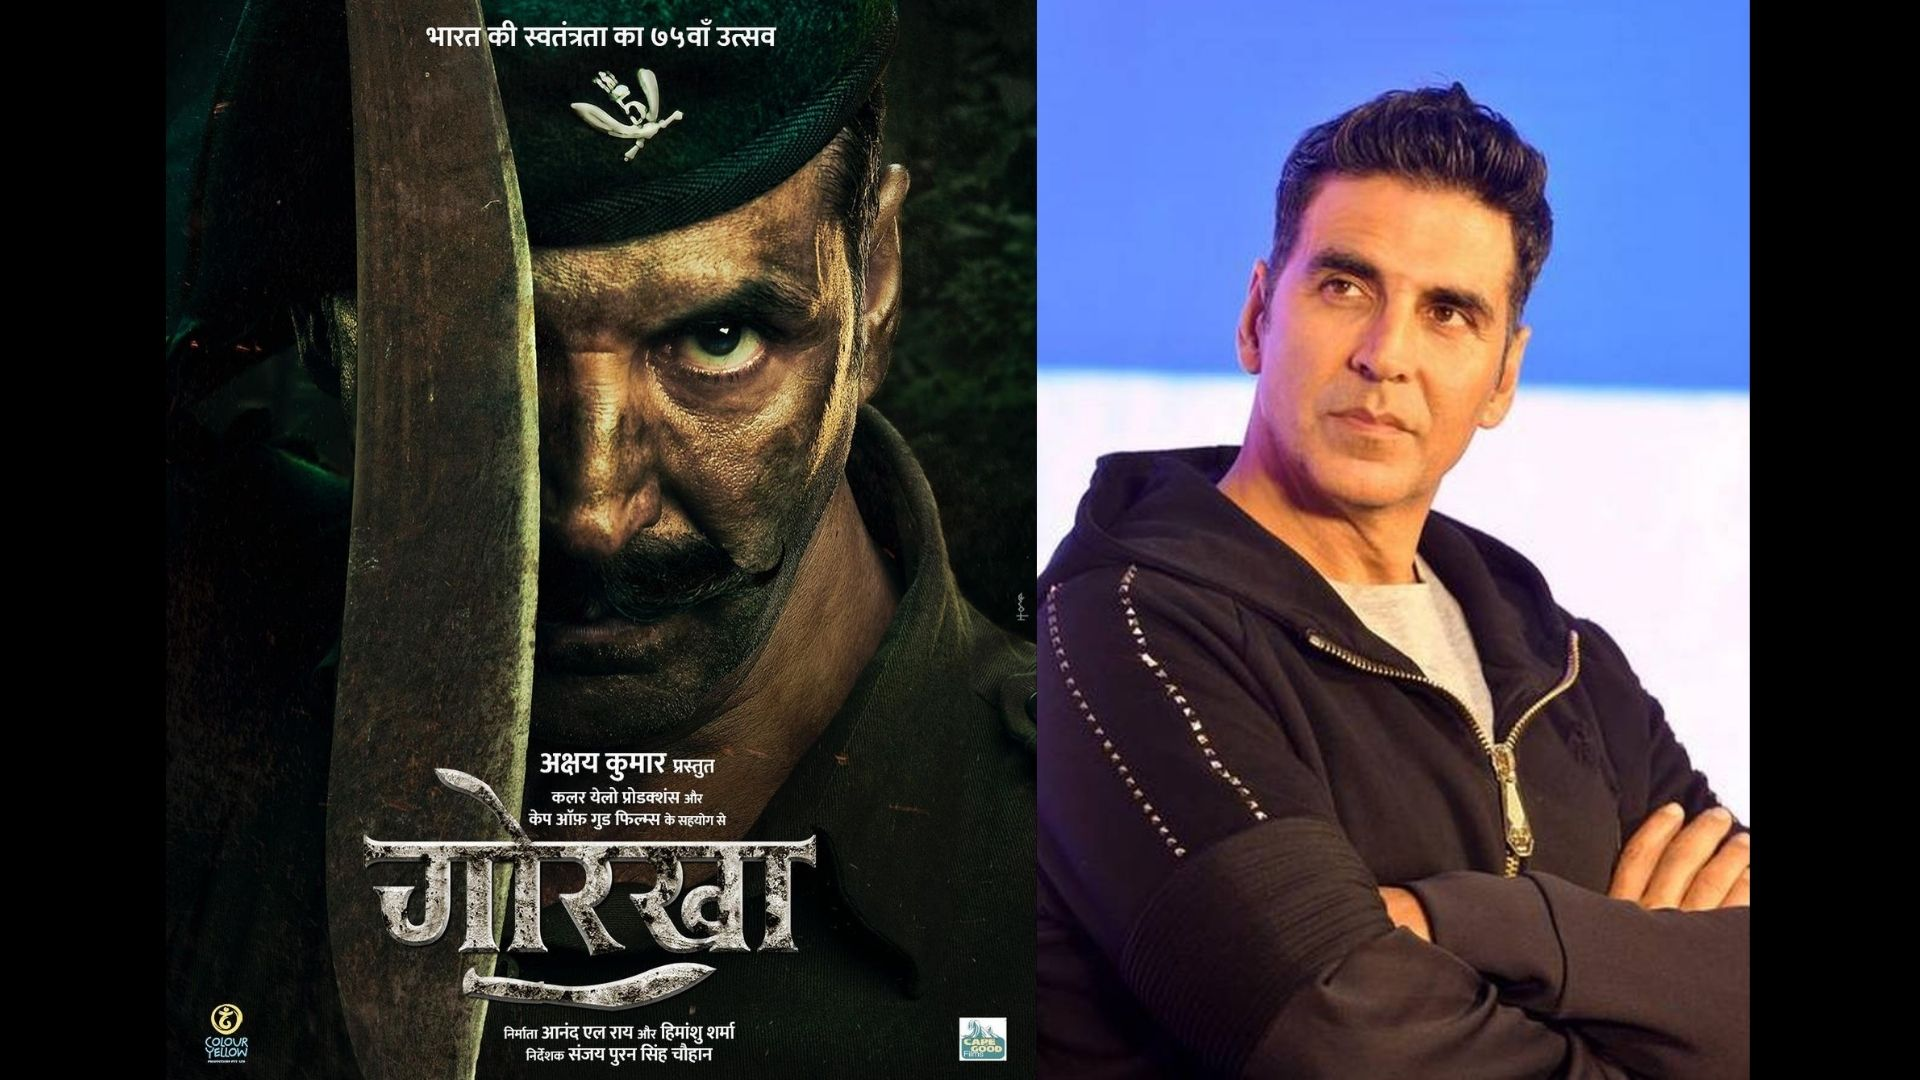 Gorkha New Poster: The Poster Of The Movie Was Released Some Time Back And Akshay Looks Like A Roaring Lion